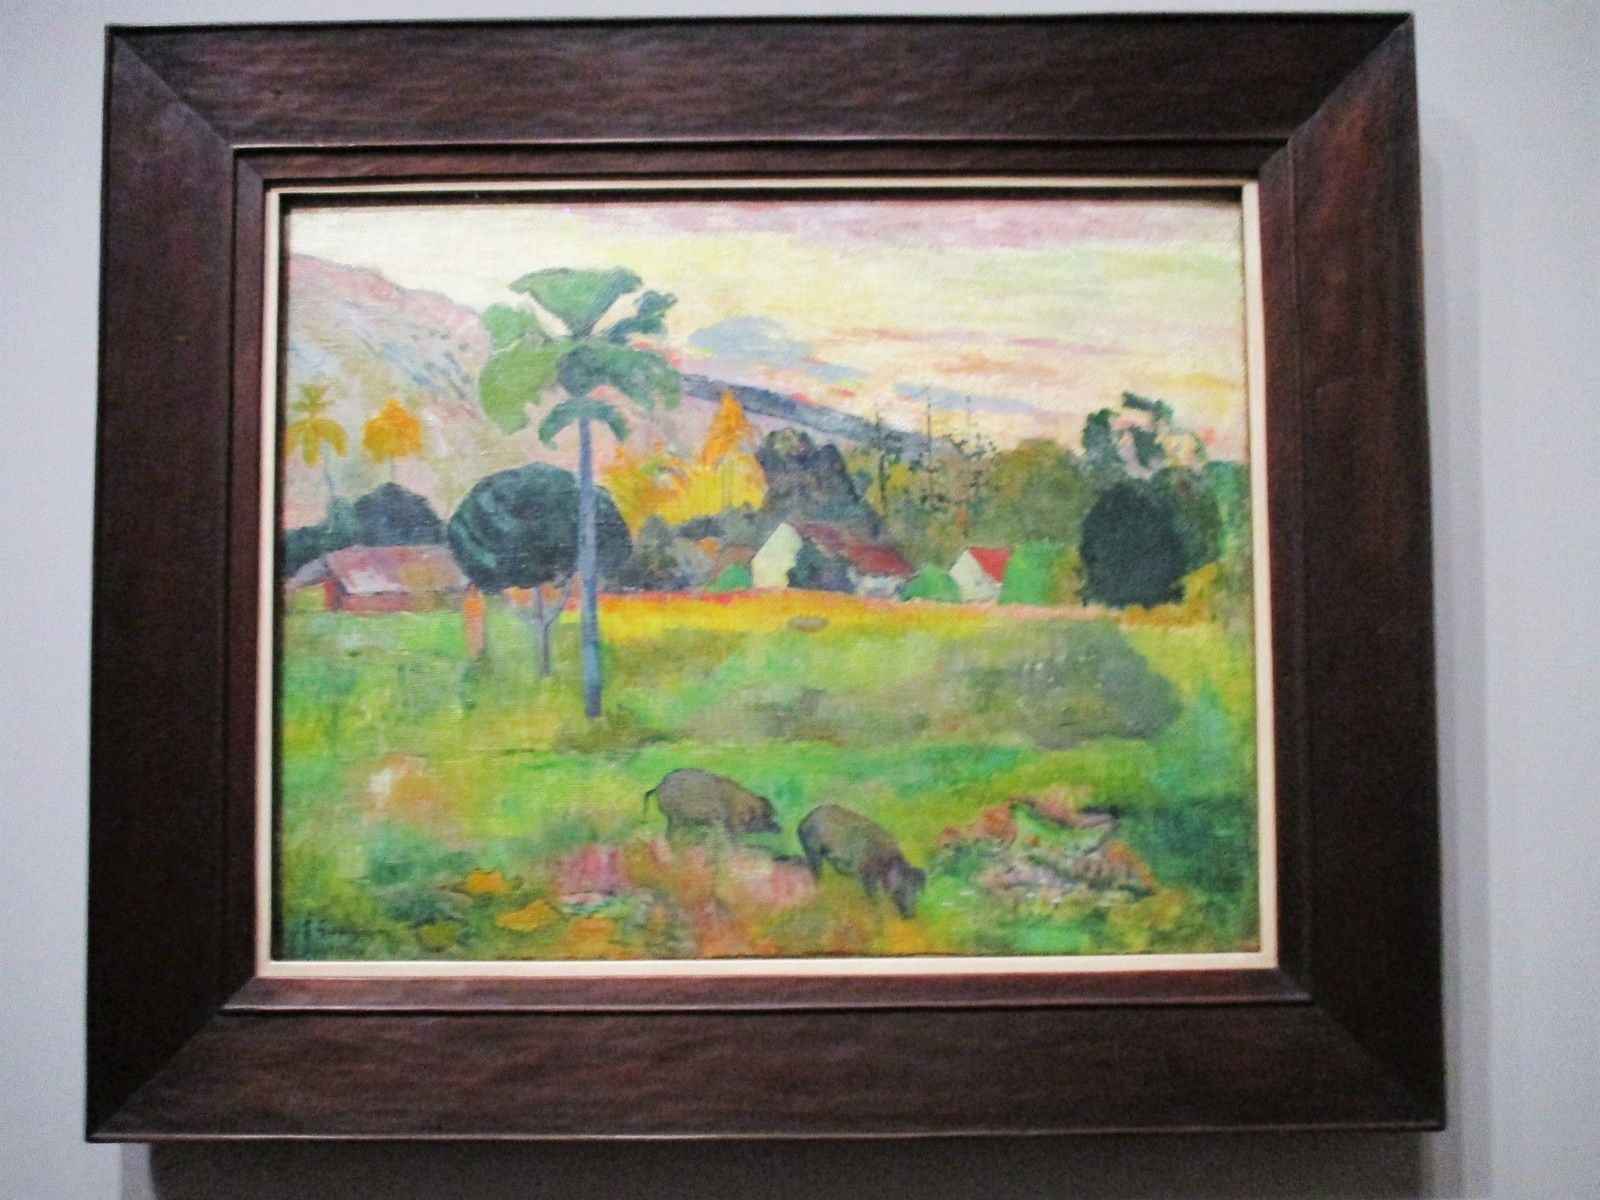 Hoere mai - Paul Gauguin, 1891